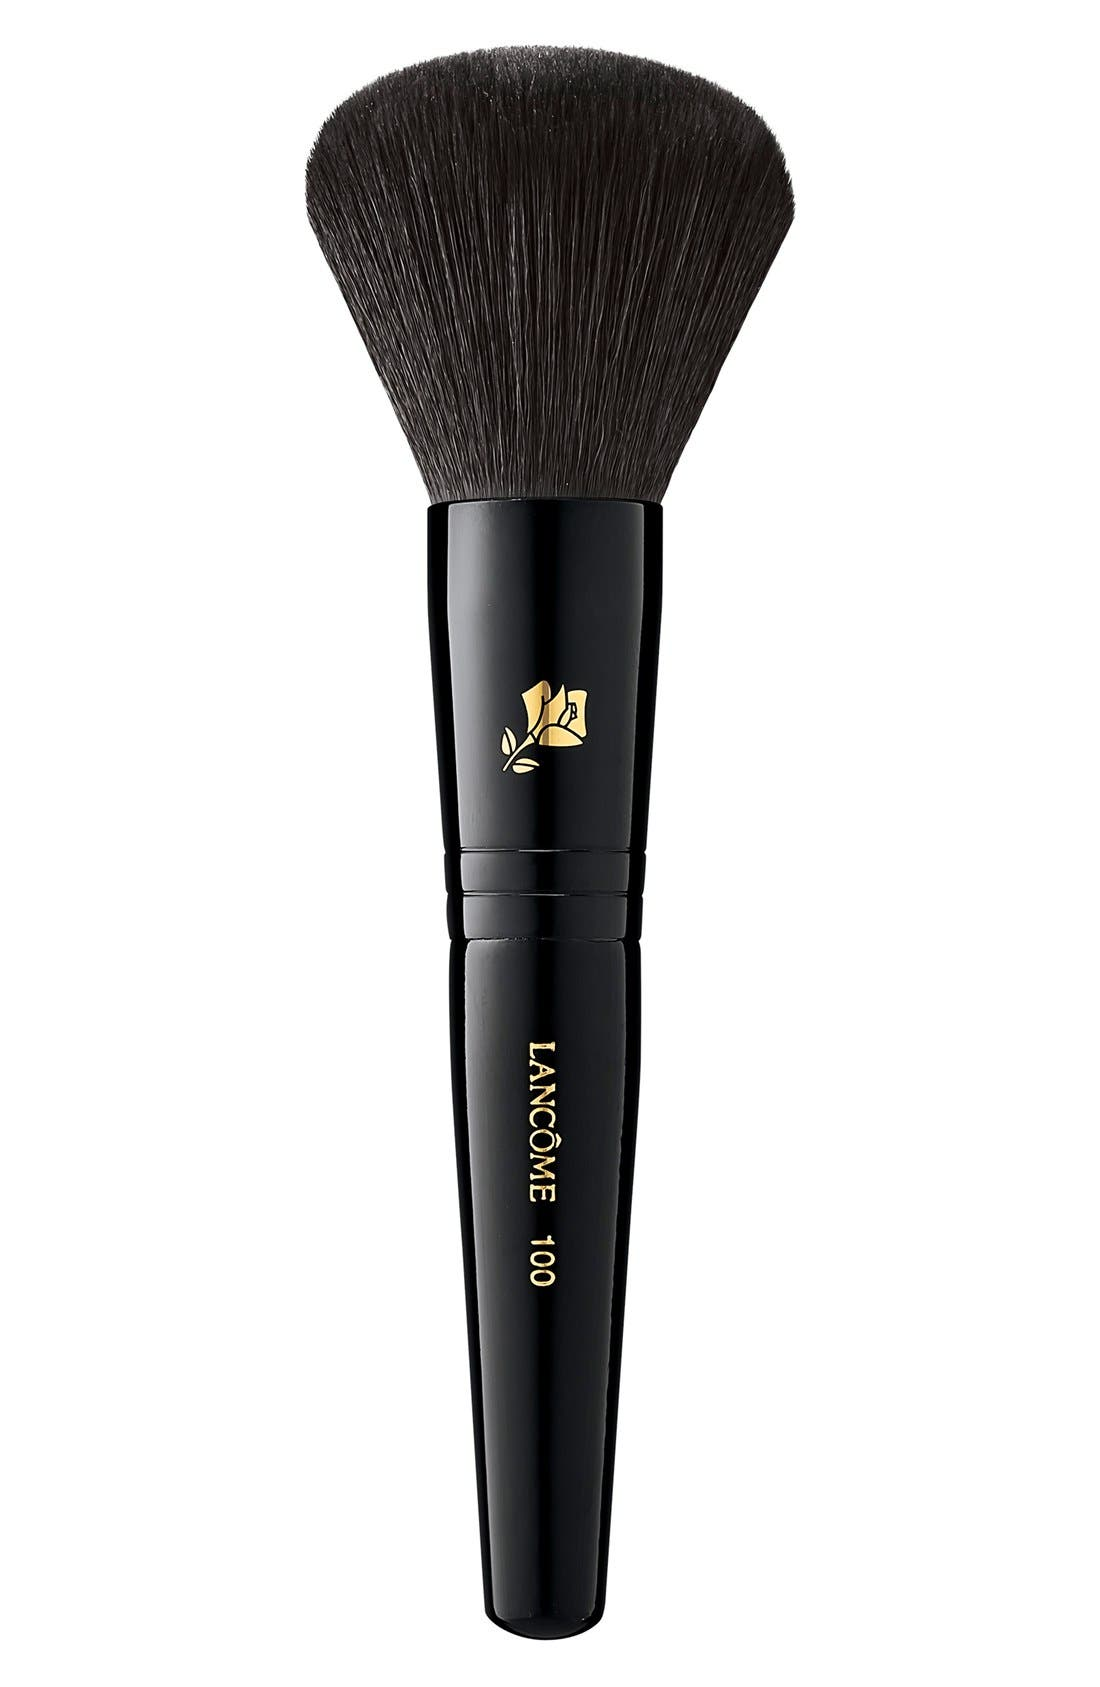 What it is: A synthetic-bristle brush with a rounded head that provides moderate-to-full coverage. What it does: Ideal for use with bronzer or powder foudnation, this brush allows product to effortlessly fuse with skin so you can control the coverage. How to use: Sweep the rounded head onto skin for a quick, clean, fool-proof application and natural-looking coverage. Style Name: Lancome Bronzer Mineral Brush. Style Number: 262585. Available in